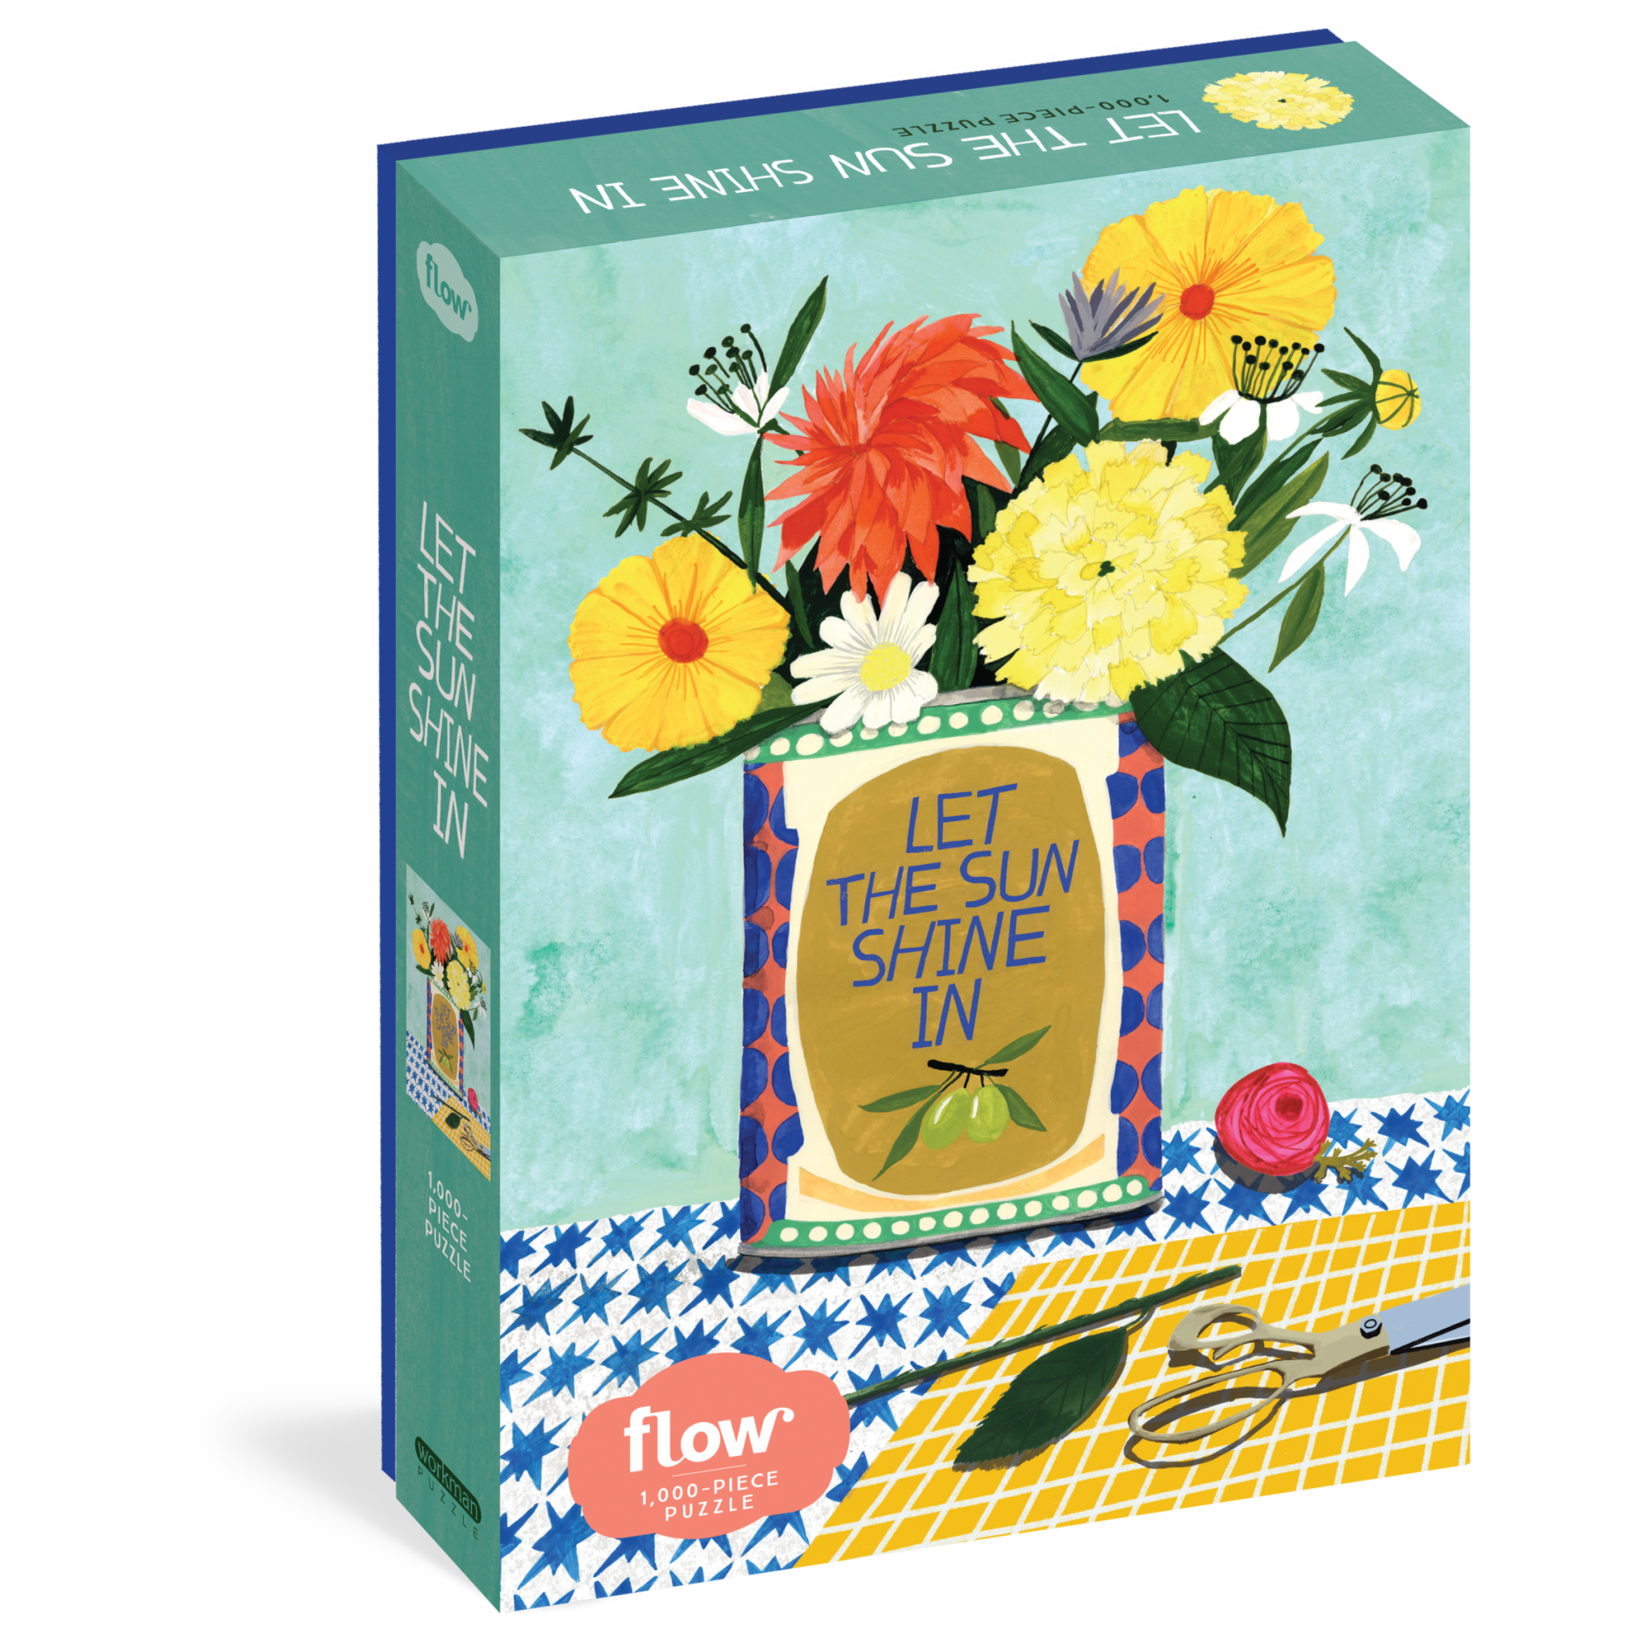 Let the Sun Shine In - 1000 Piece Jigsaw Puzzle